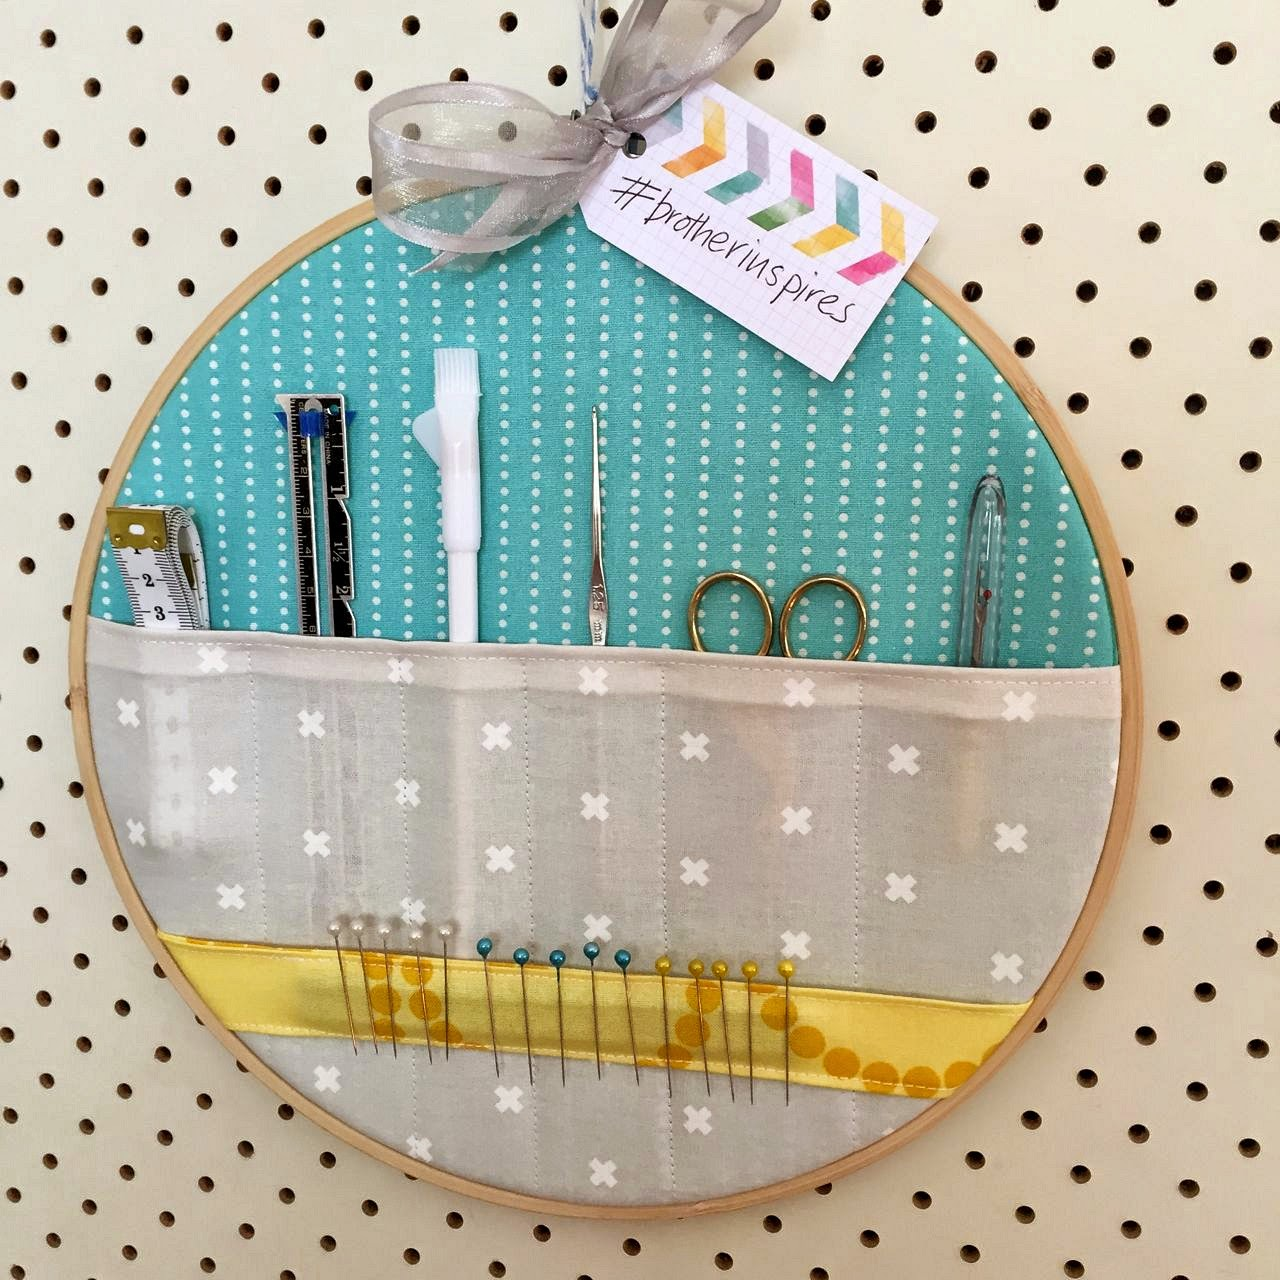 Embroidery Hoop Storage Pockets from Sew Delicious